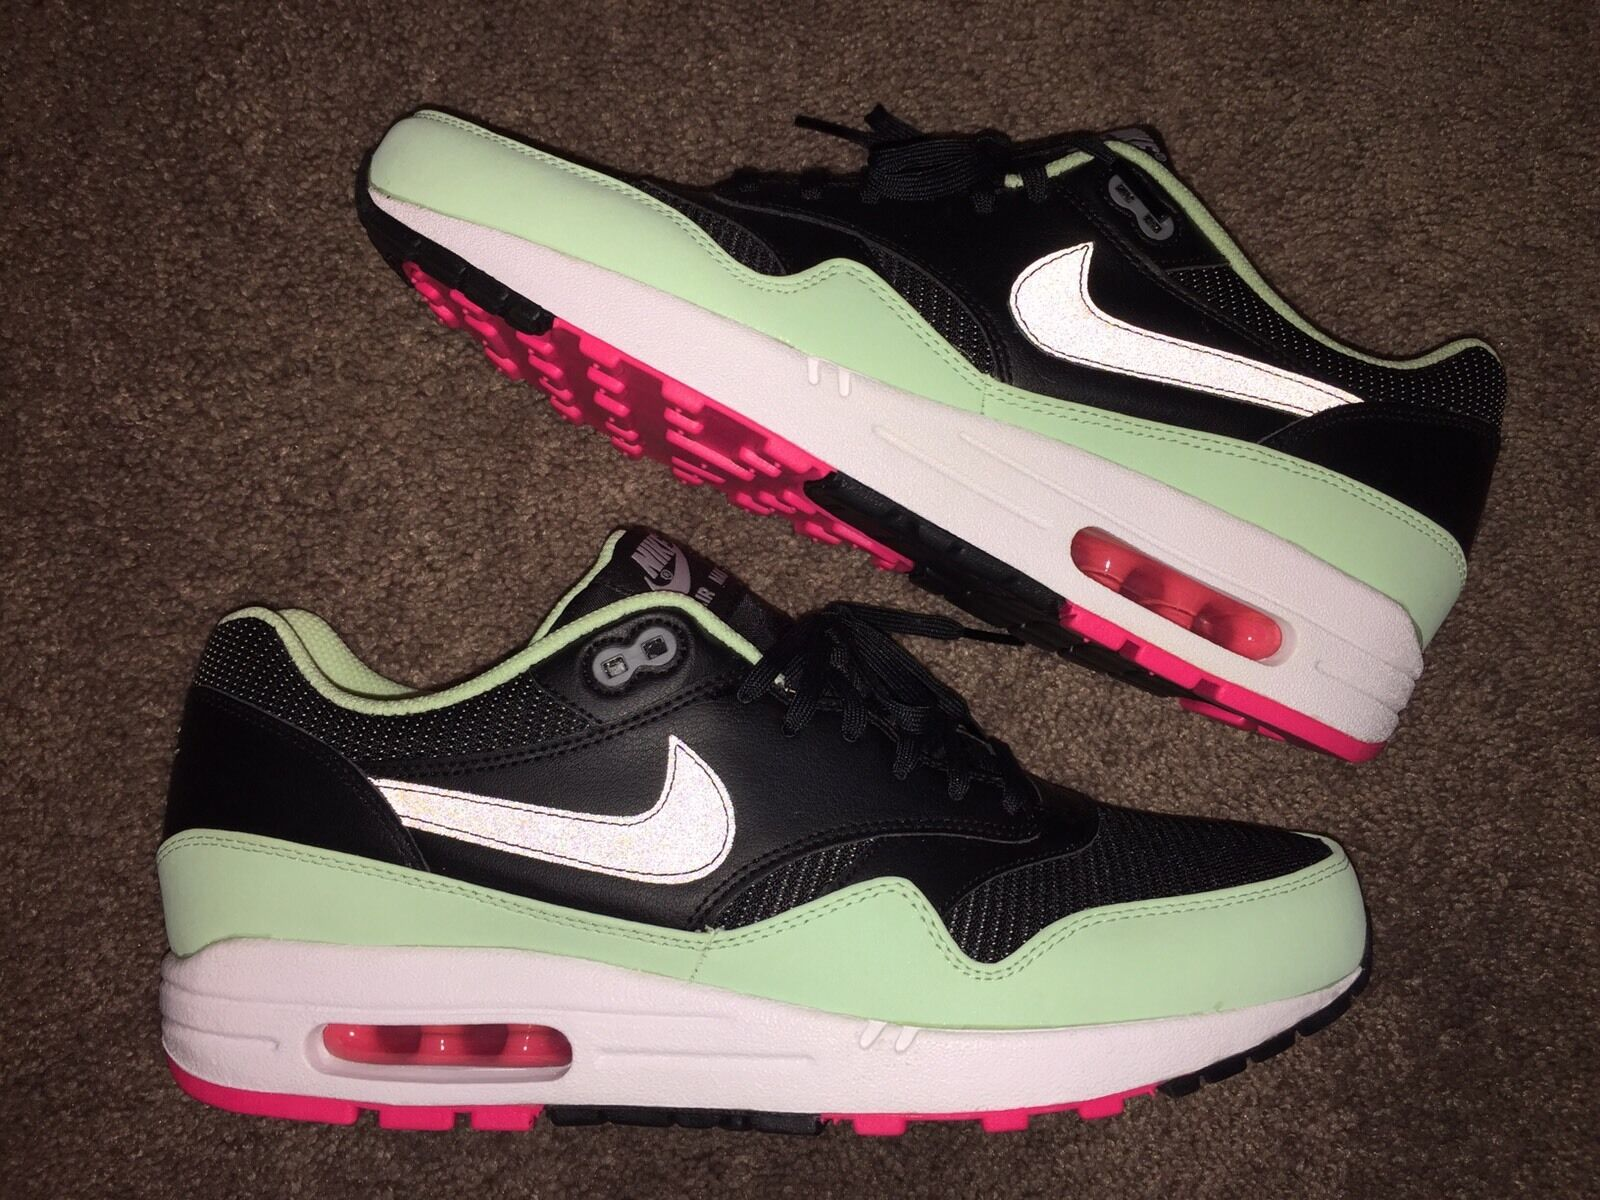 a9d6bc92a586aa Nike Air Max 1 FB Black Fresh MINT Green Pink Flash White Yeezy ...